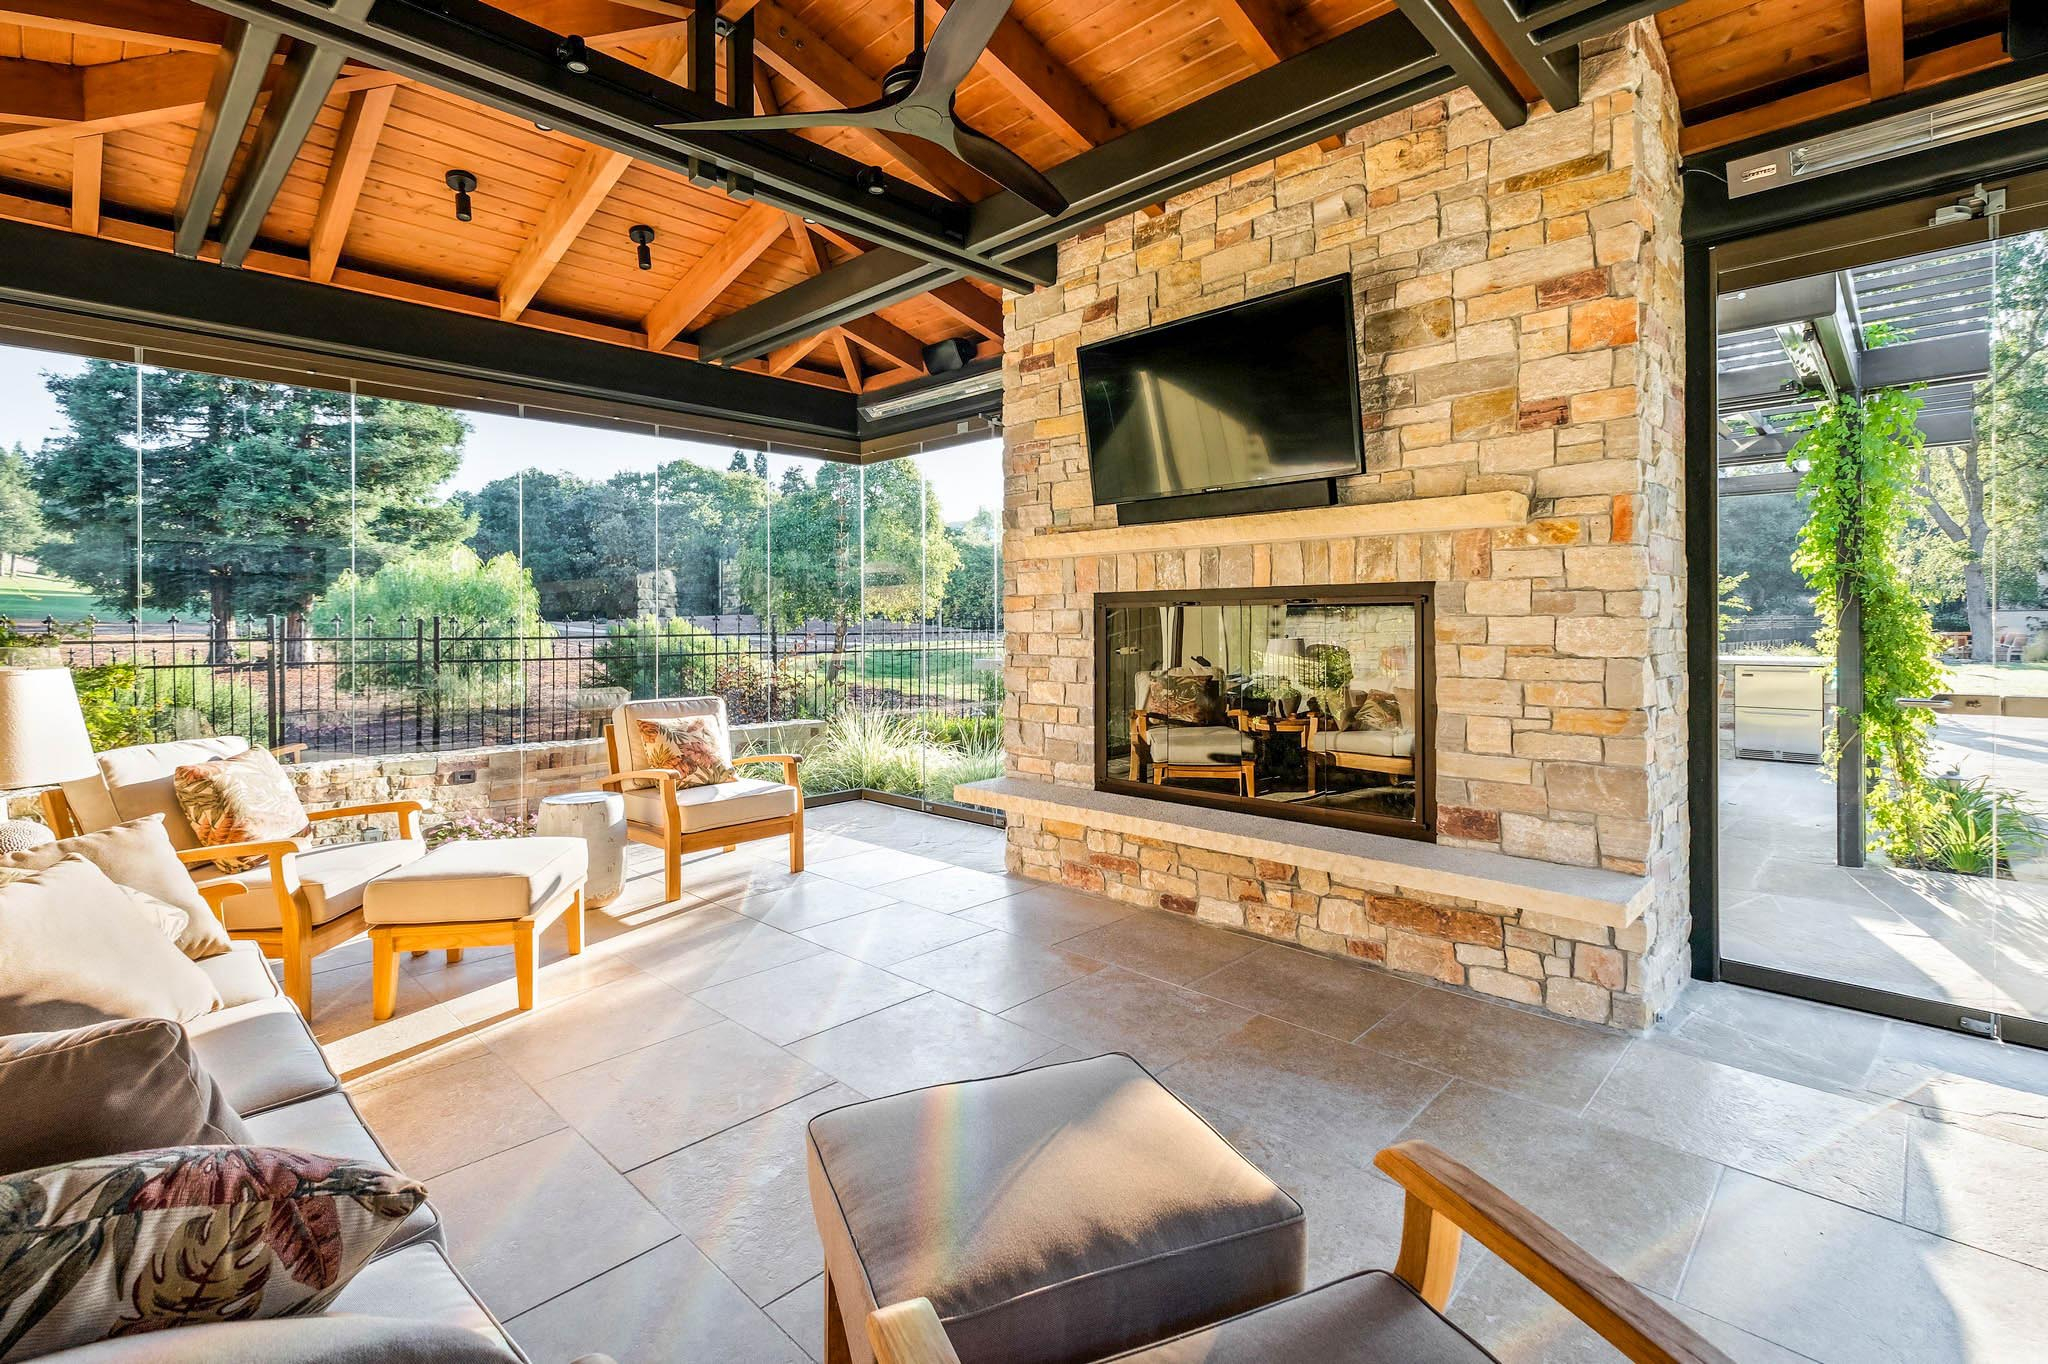 cabana design inspiration with frameless glass walls for indoor/outdoor living